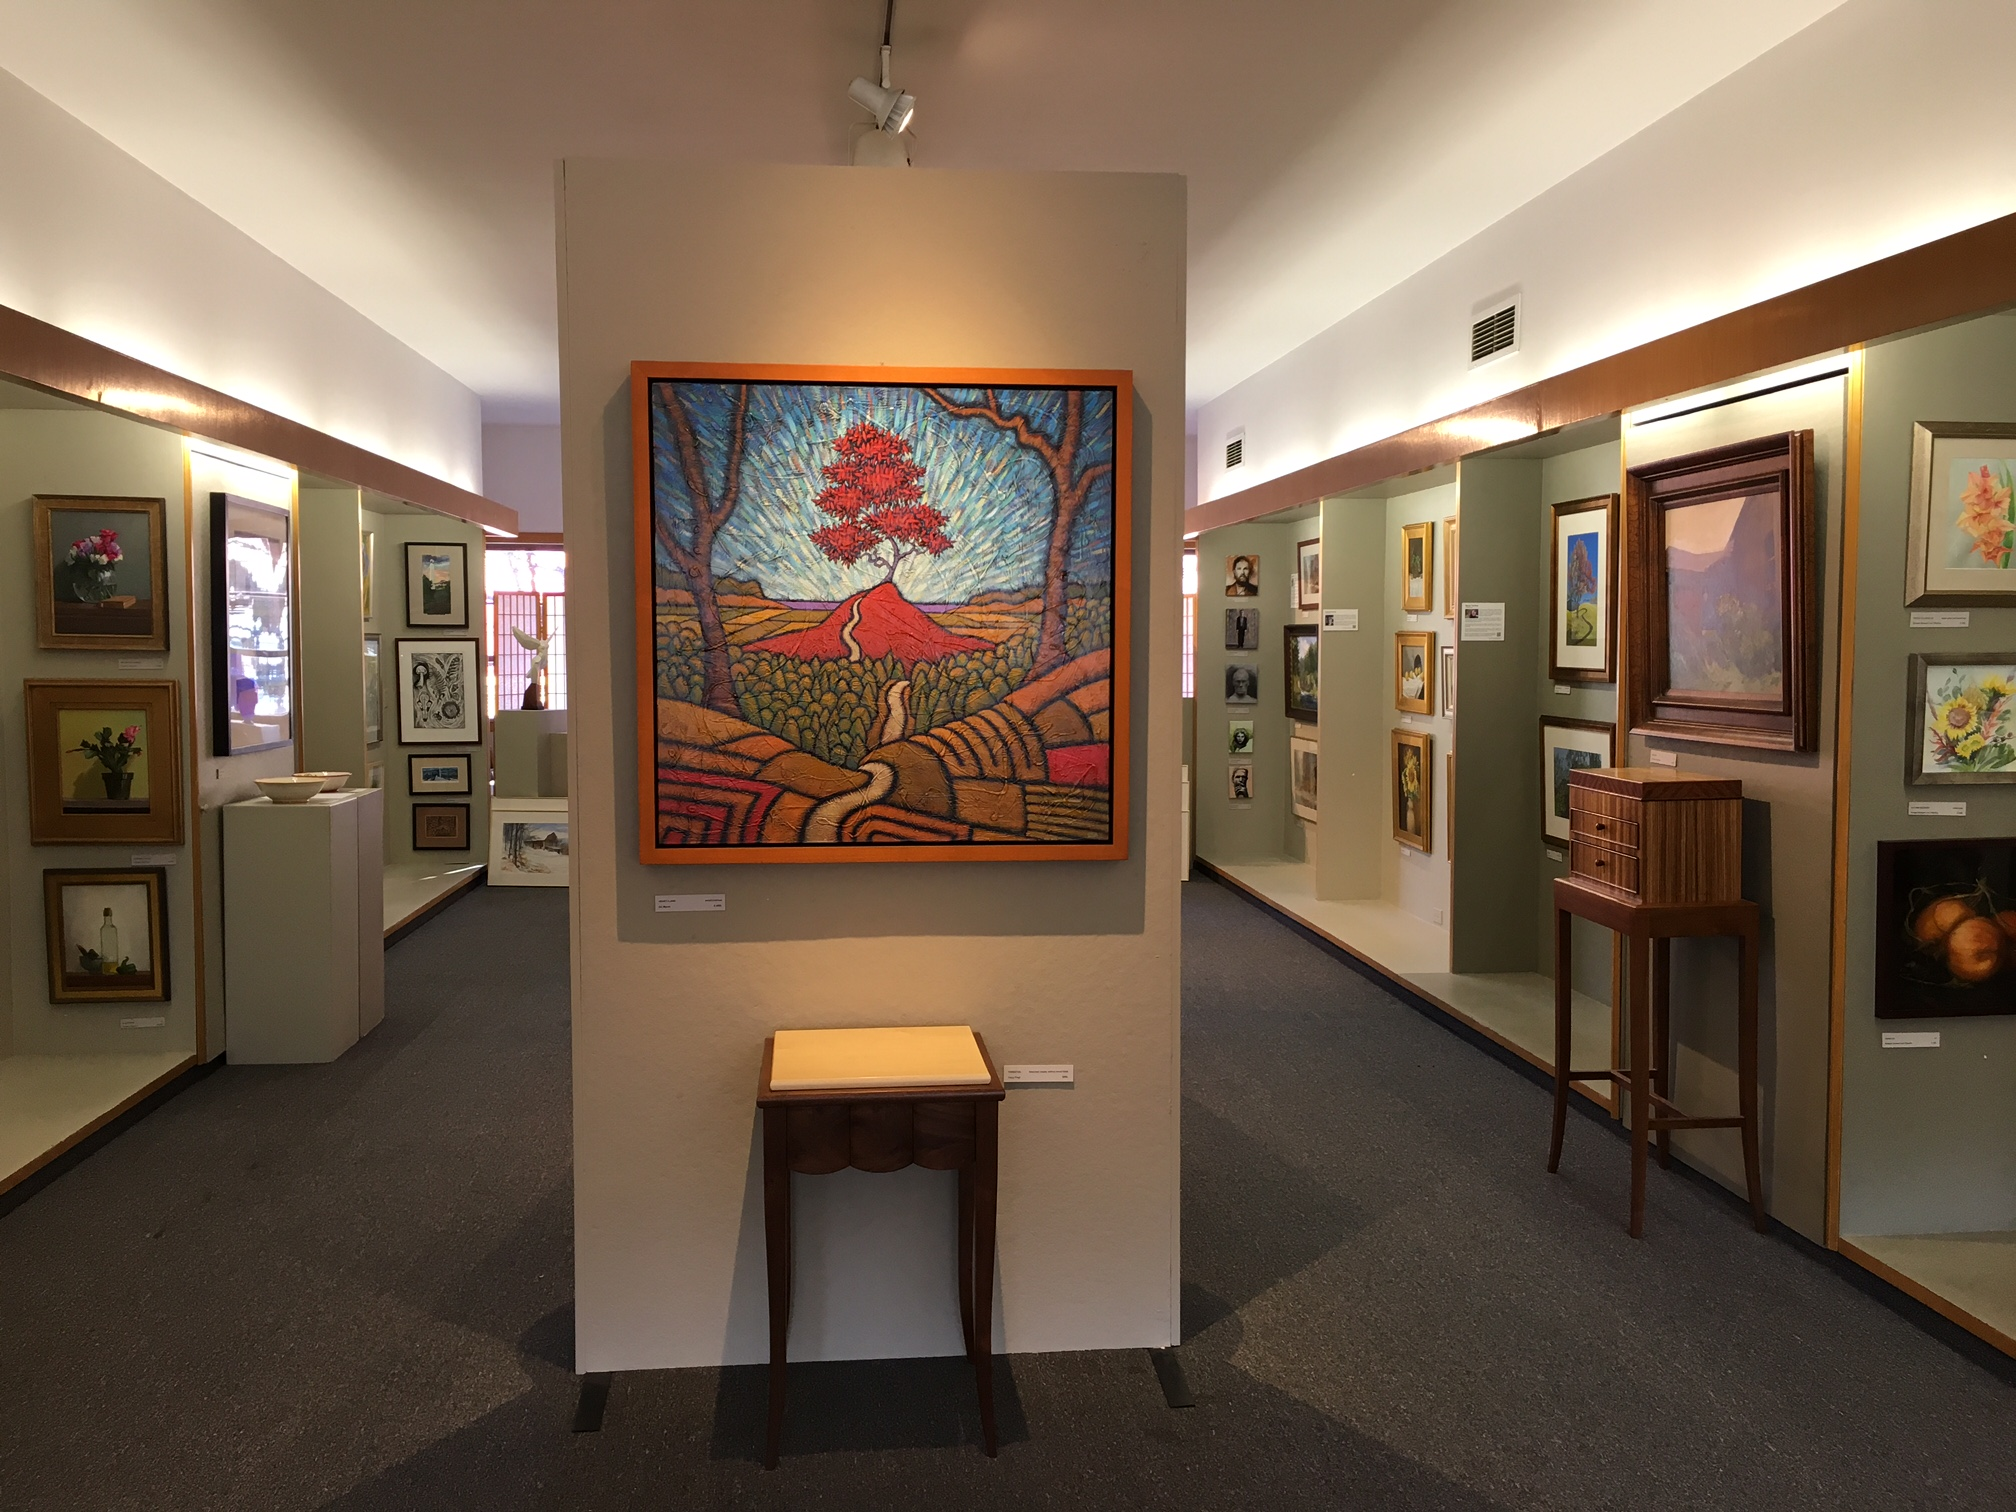 West End Gallery in Corning, NY